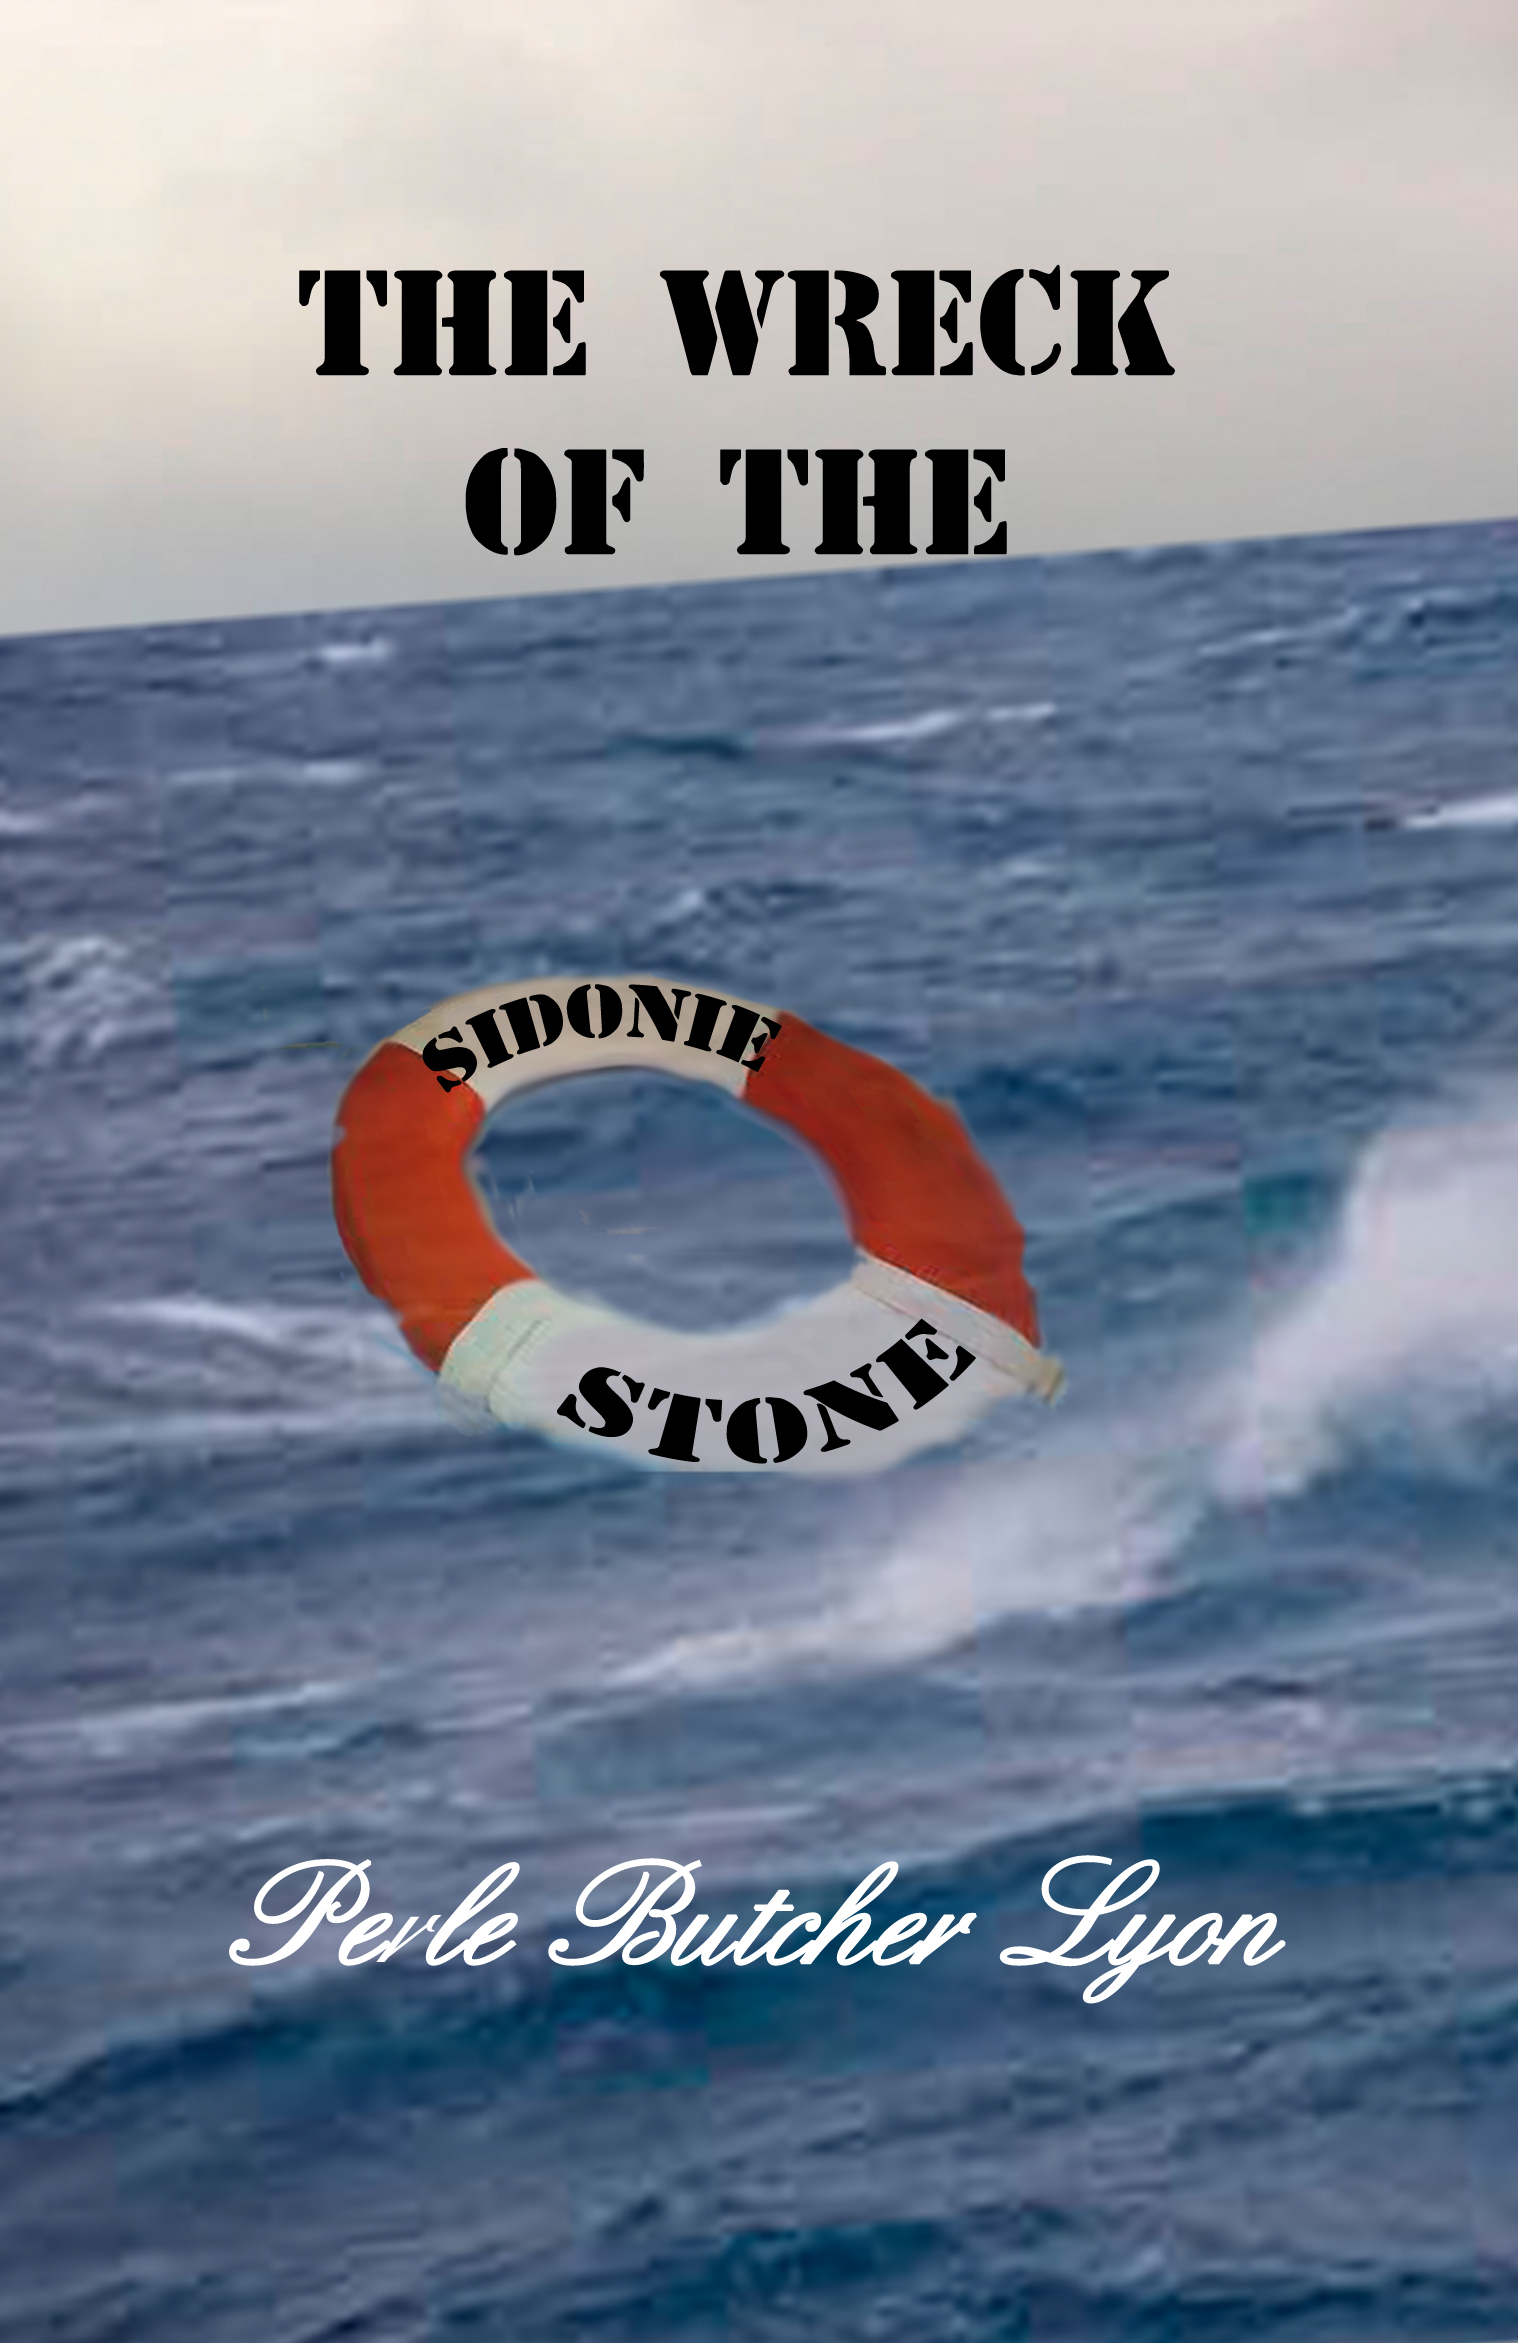 The Wreck of the Sidonie Stone